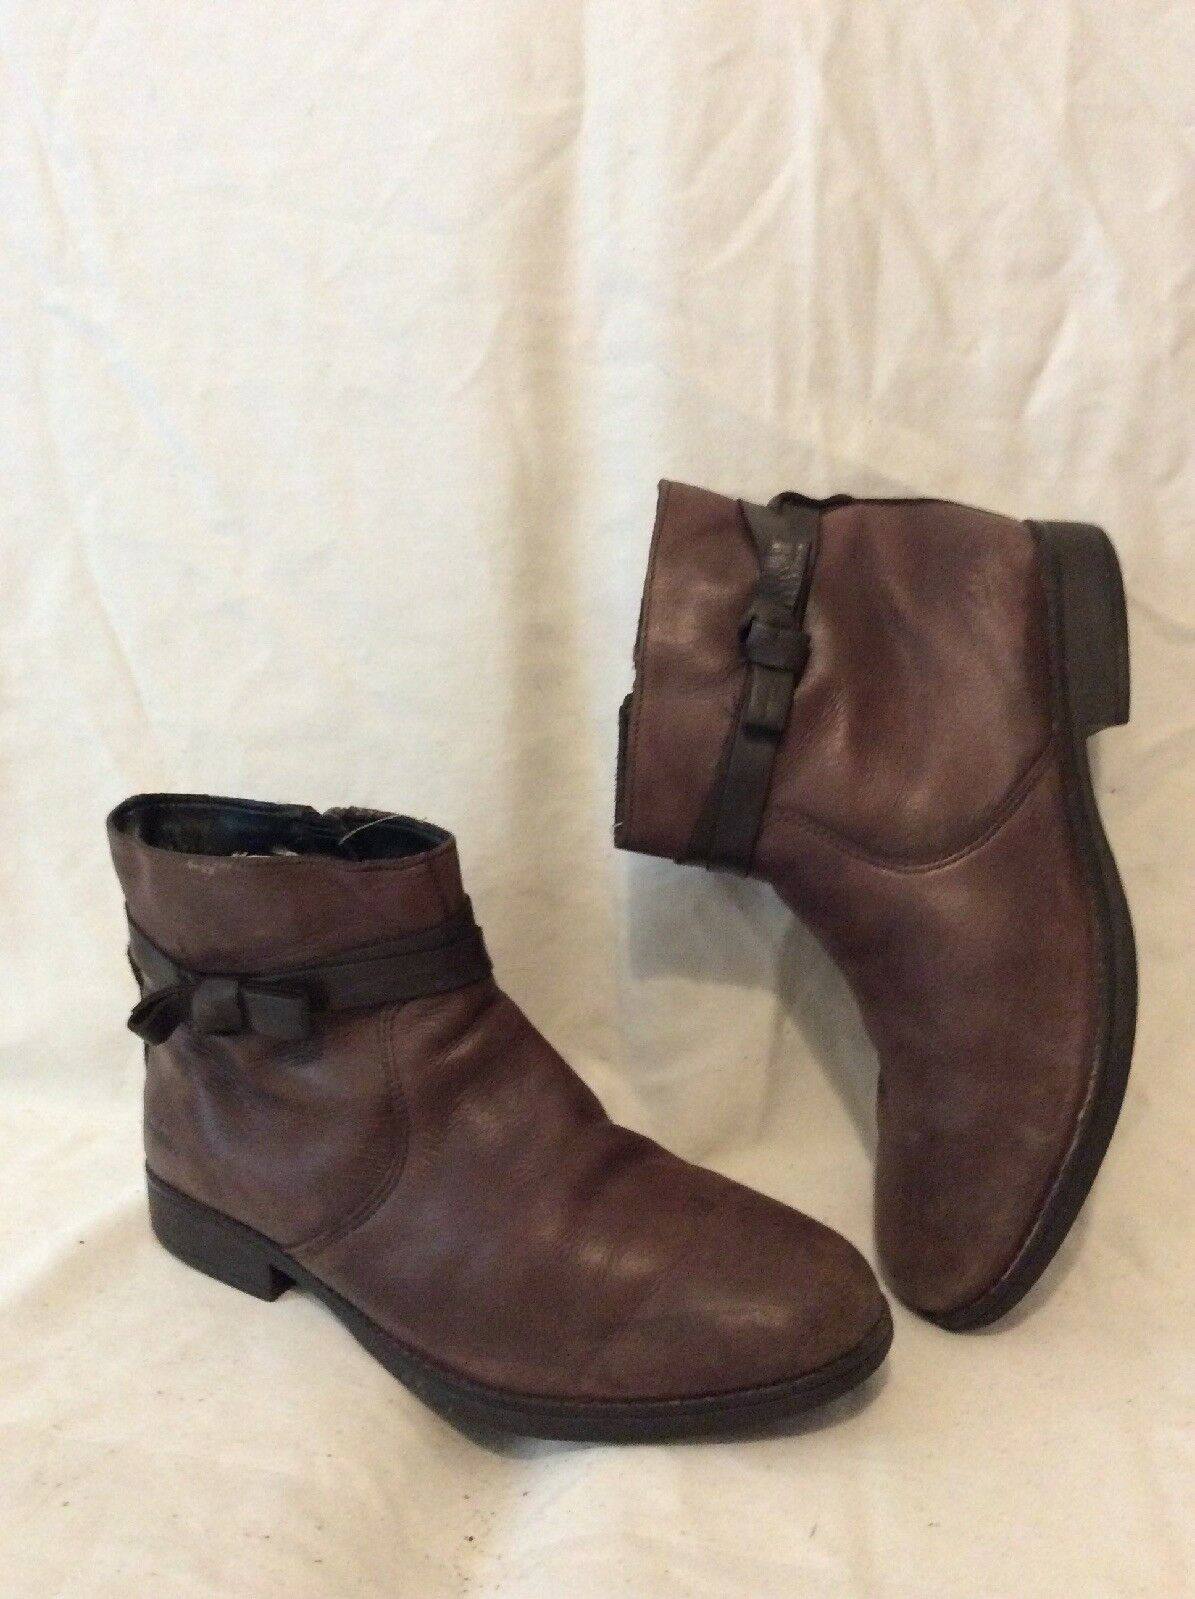 Clarks Brown Ankle Leather Boots Size 4F